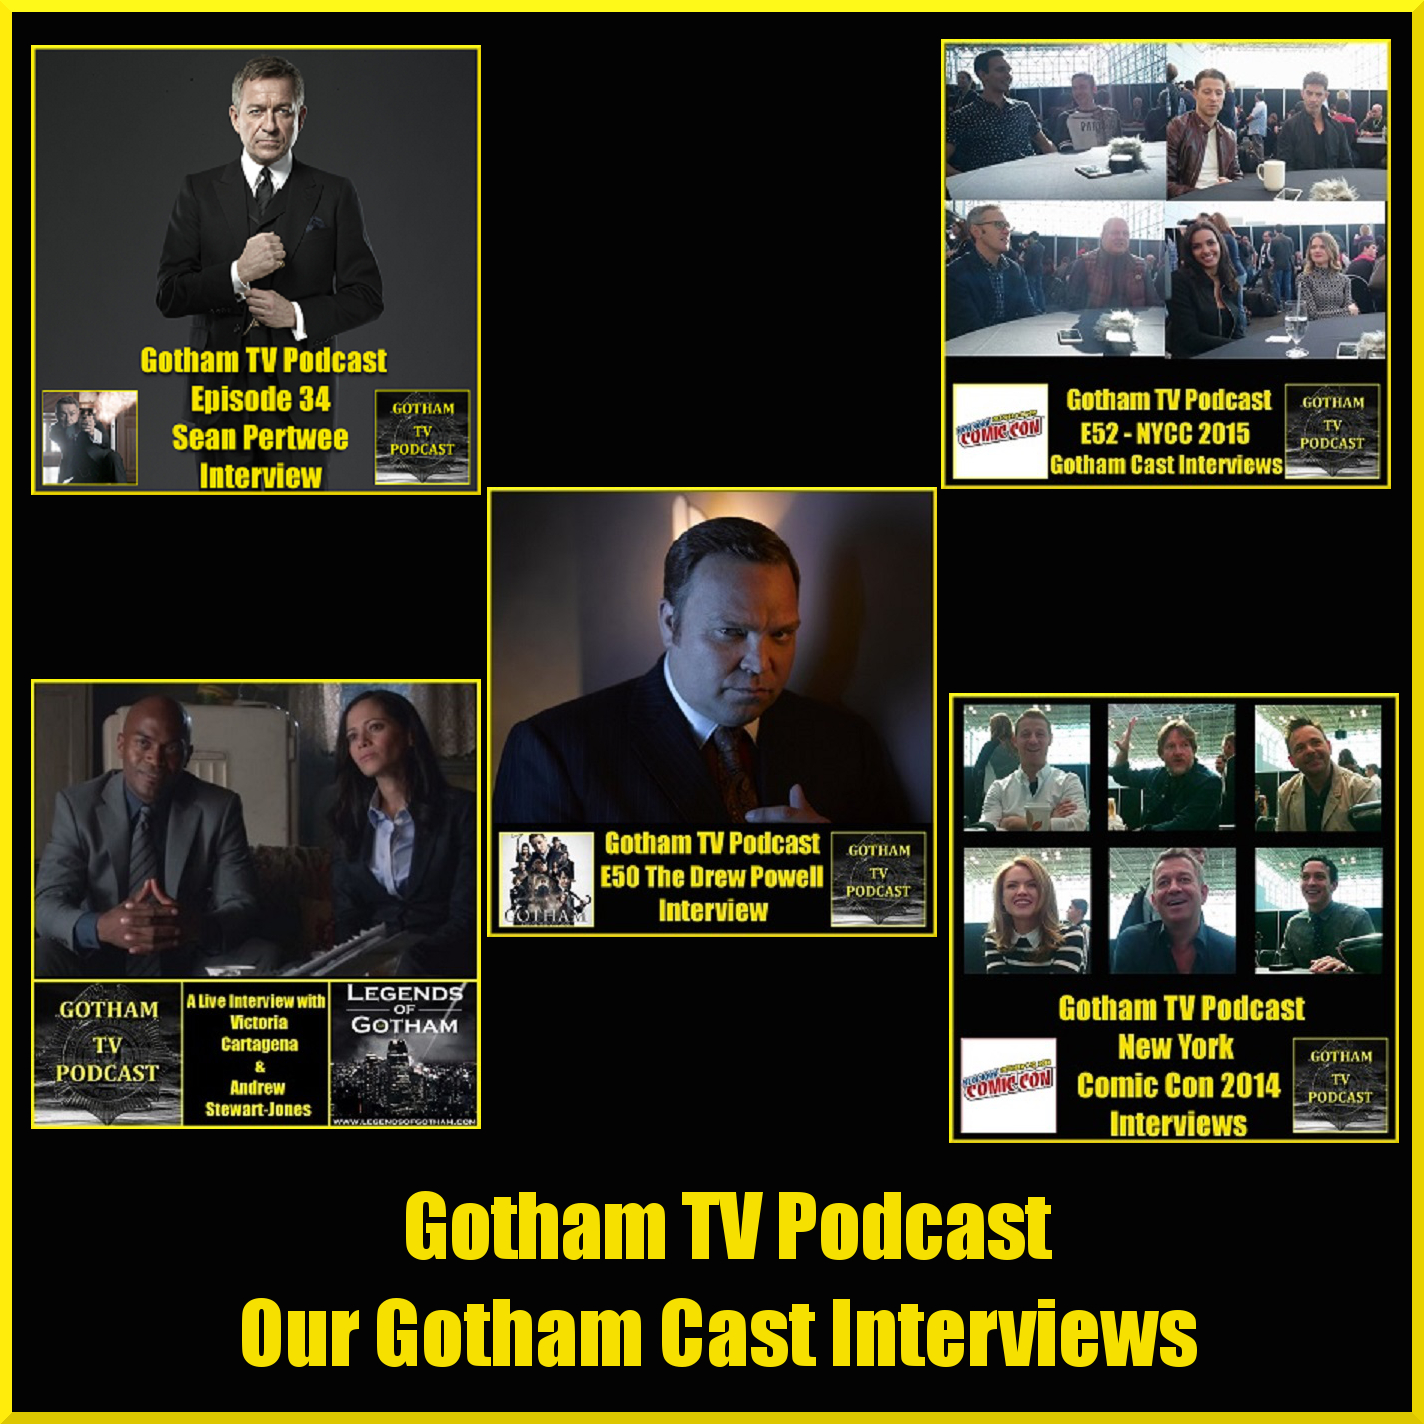 Our Interviews with the cast of Gotham